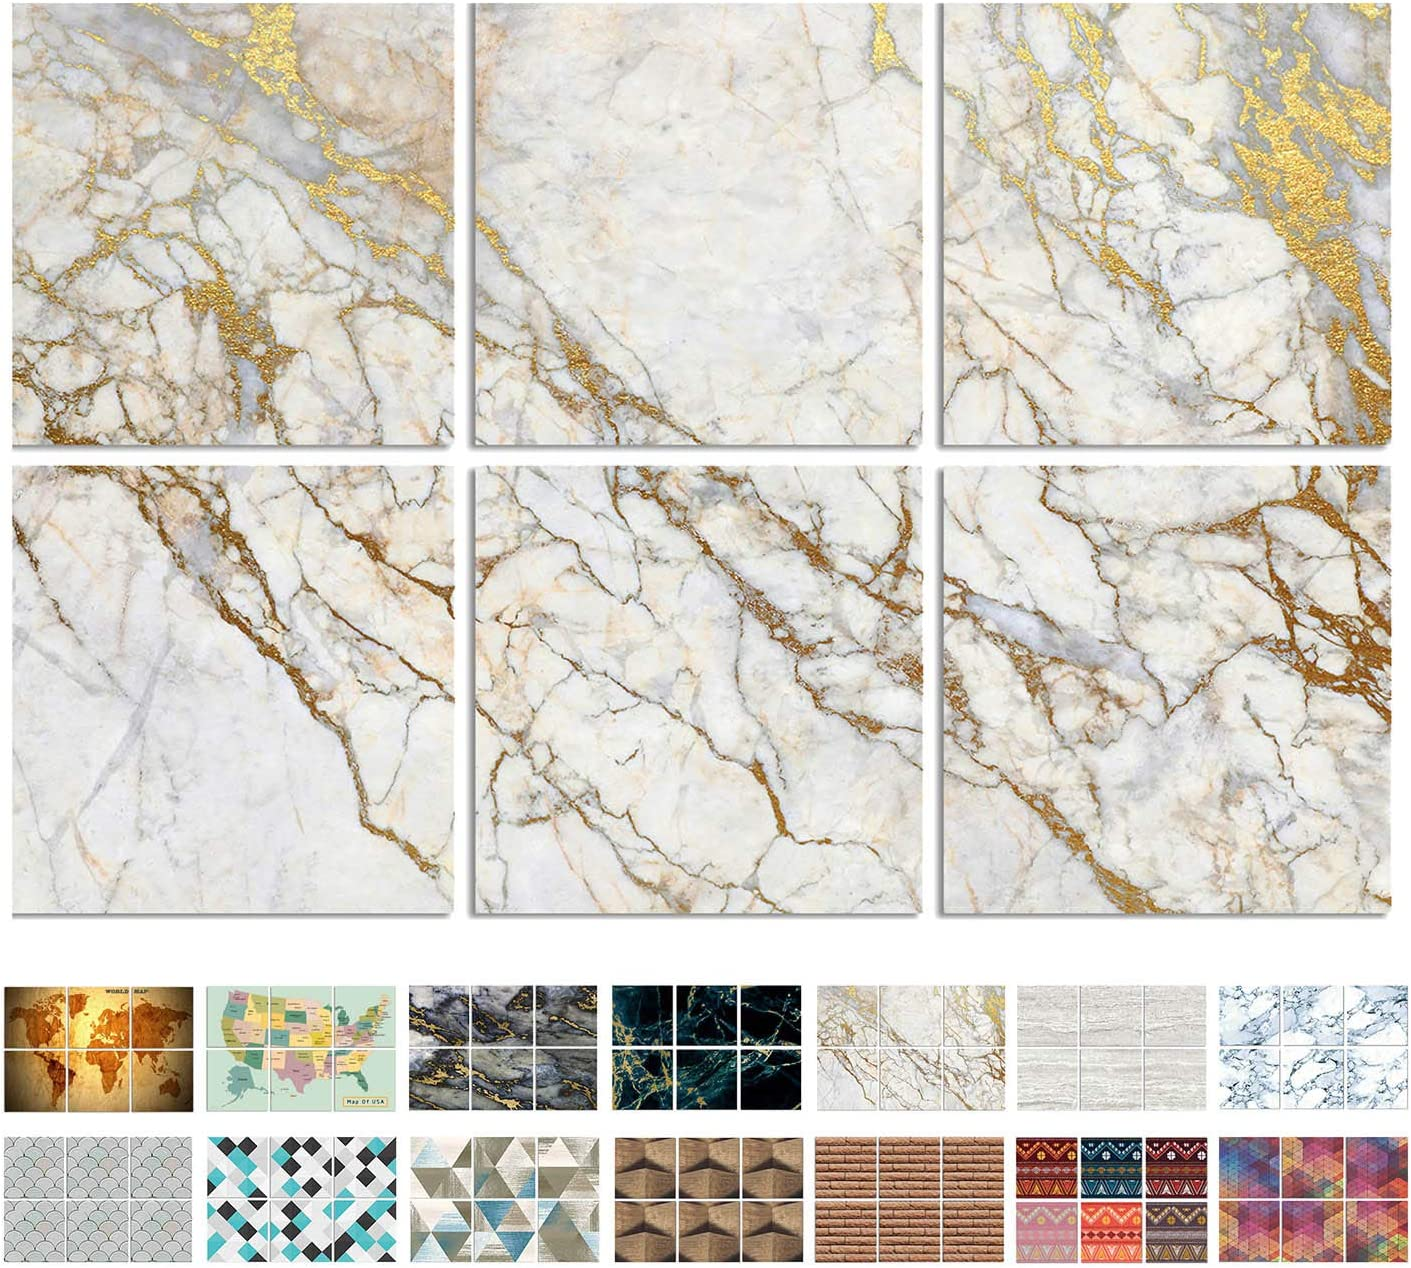 """BUBOS Marble Pattern Acoustic Panels,NRC Sound Proof Padding Wall Panels,Acoustic Tiles, Good for Soundproofing and Acoustic Treatment,Beveled Edge,12""""x12""""x0.4"""",6Pcs,Platinum Marble"""